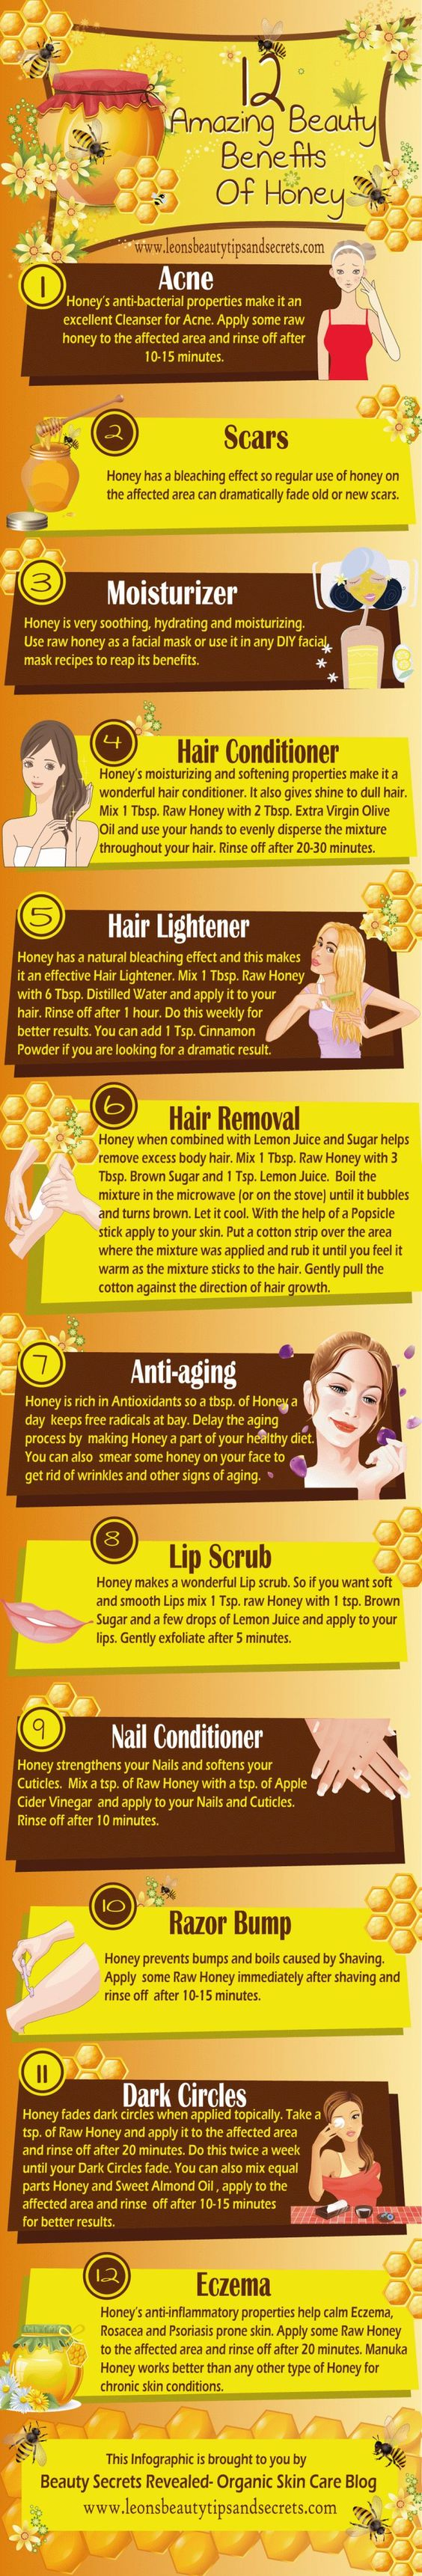 I love Witch Hazel, have used it on my     face for years.  I'll have to try some of these other uses!!